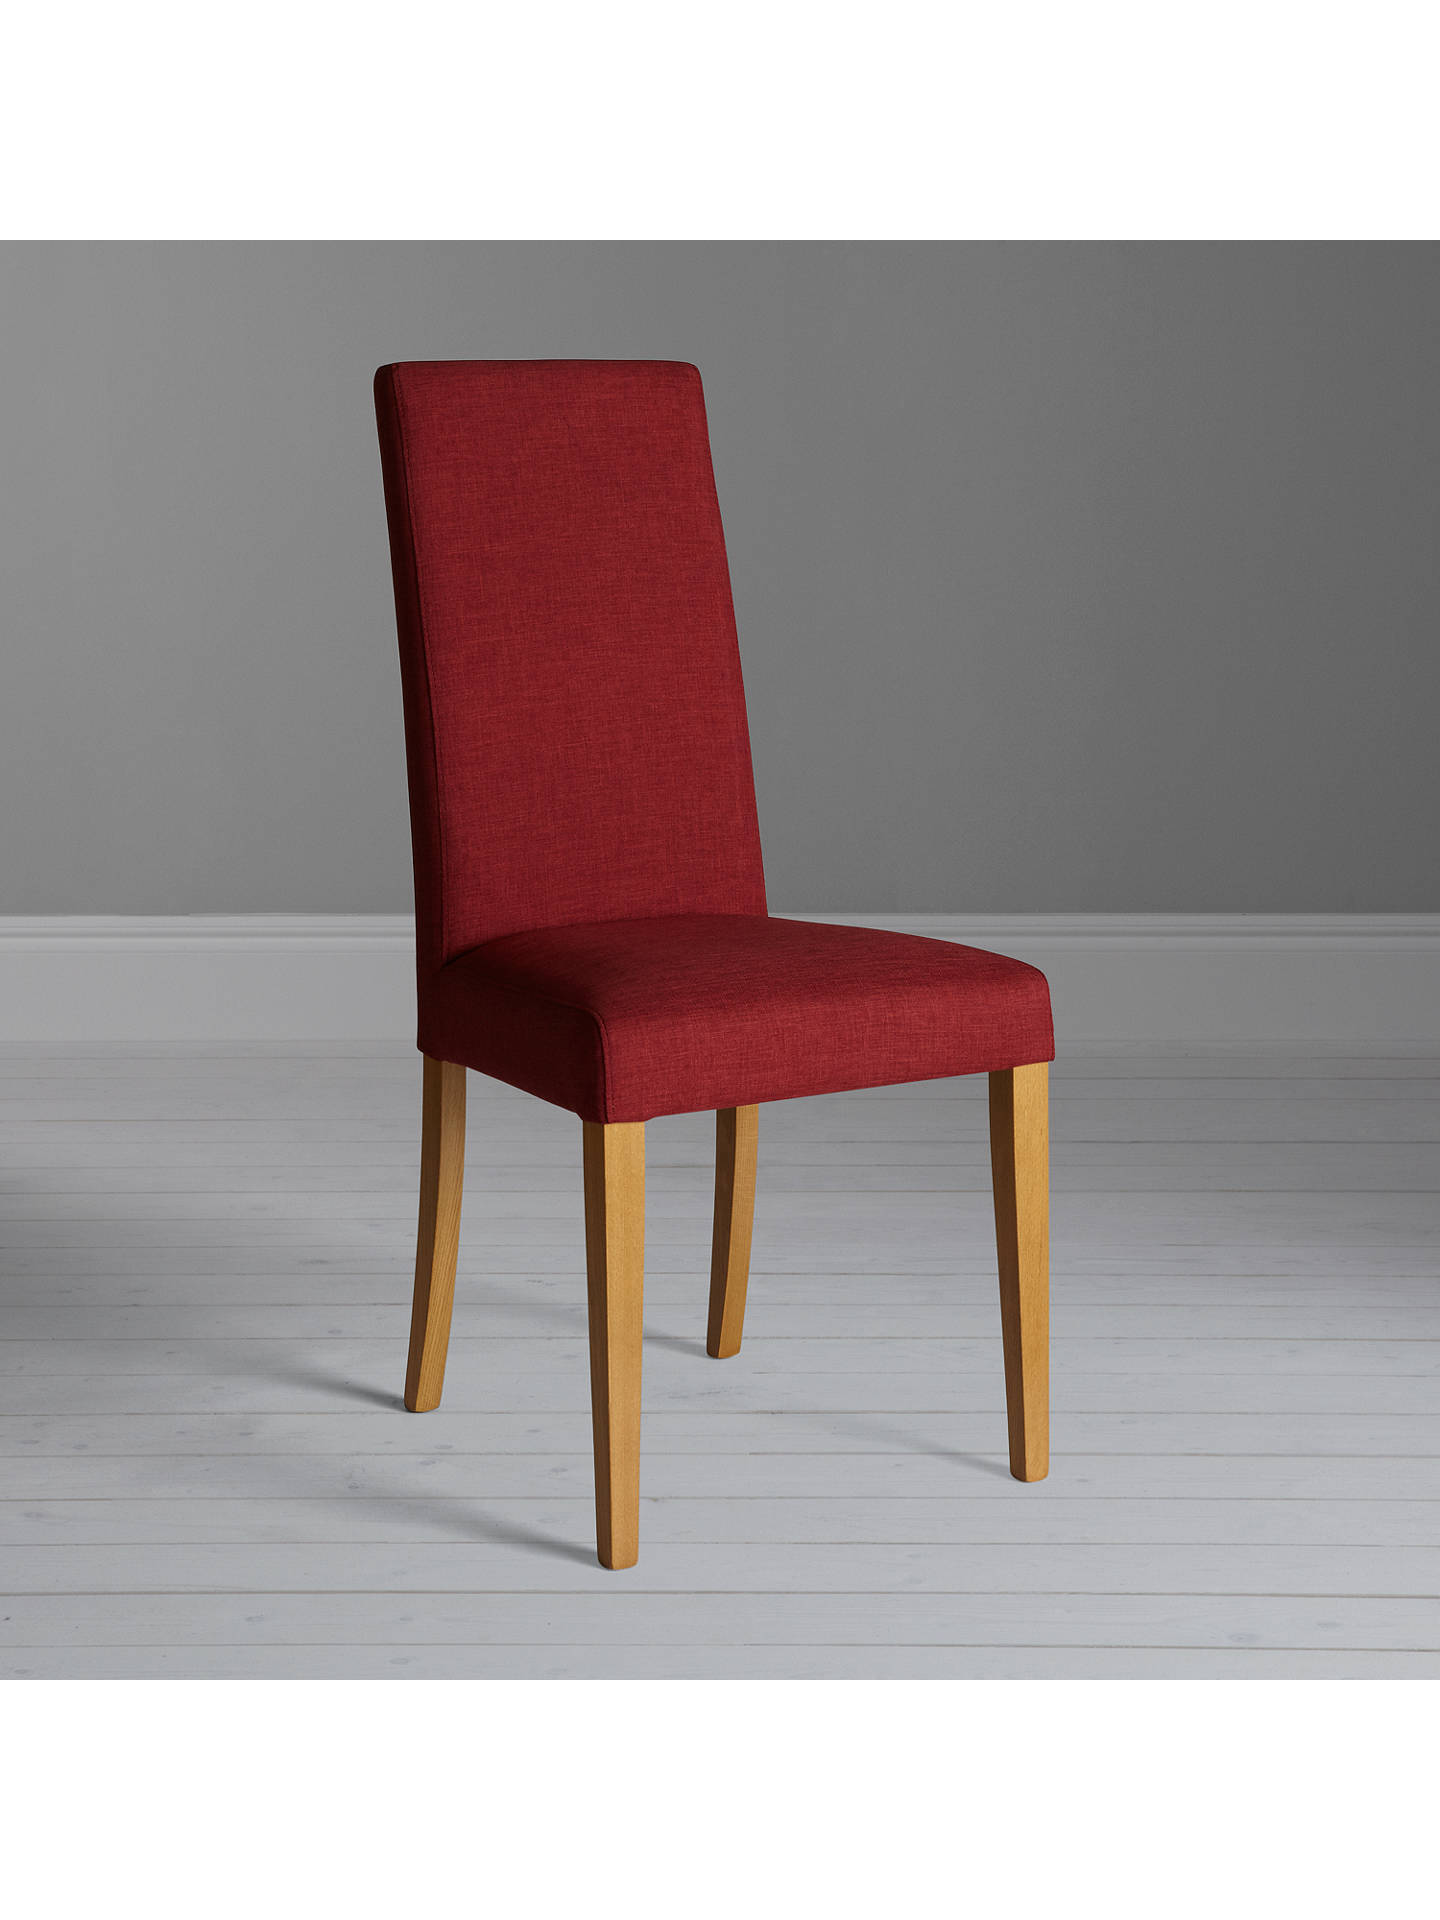 BuyJohn Lewis & Partners Lydia Dining Chair, Red Online at johnlewis.com